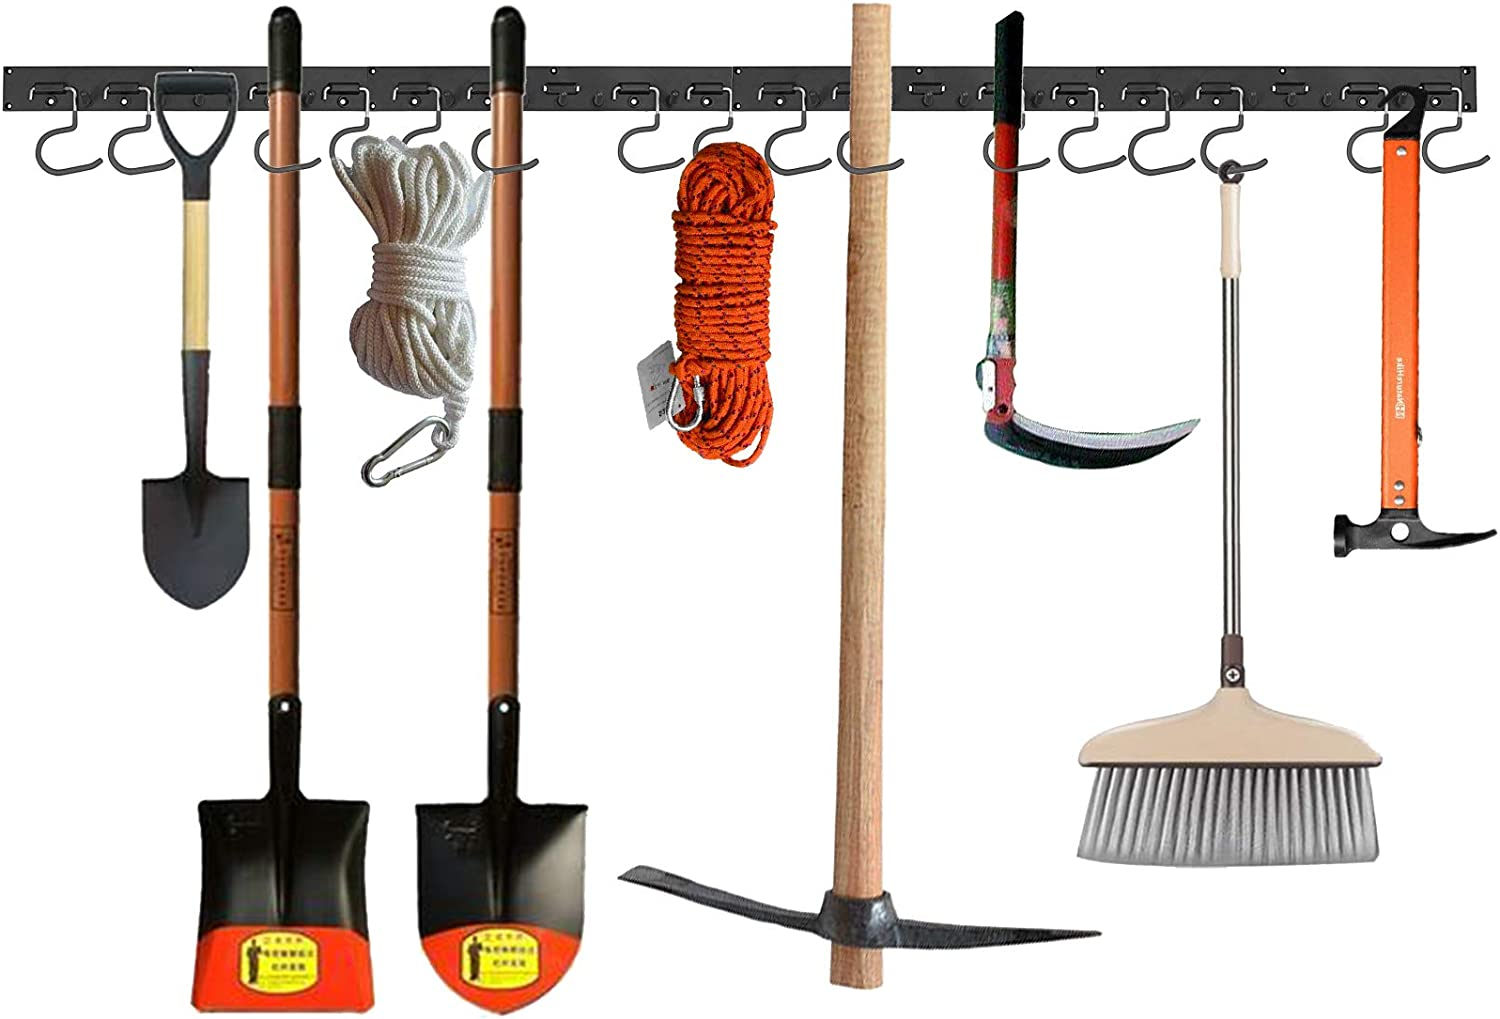 Kamtop Adjustable wall-mount garage rack 64 Inch with 16 hooks and screws Heavy Duty Tool Hanger Adjustable Storage System Wall Organize for Garden